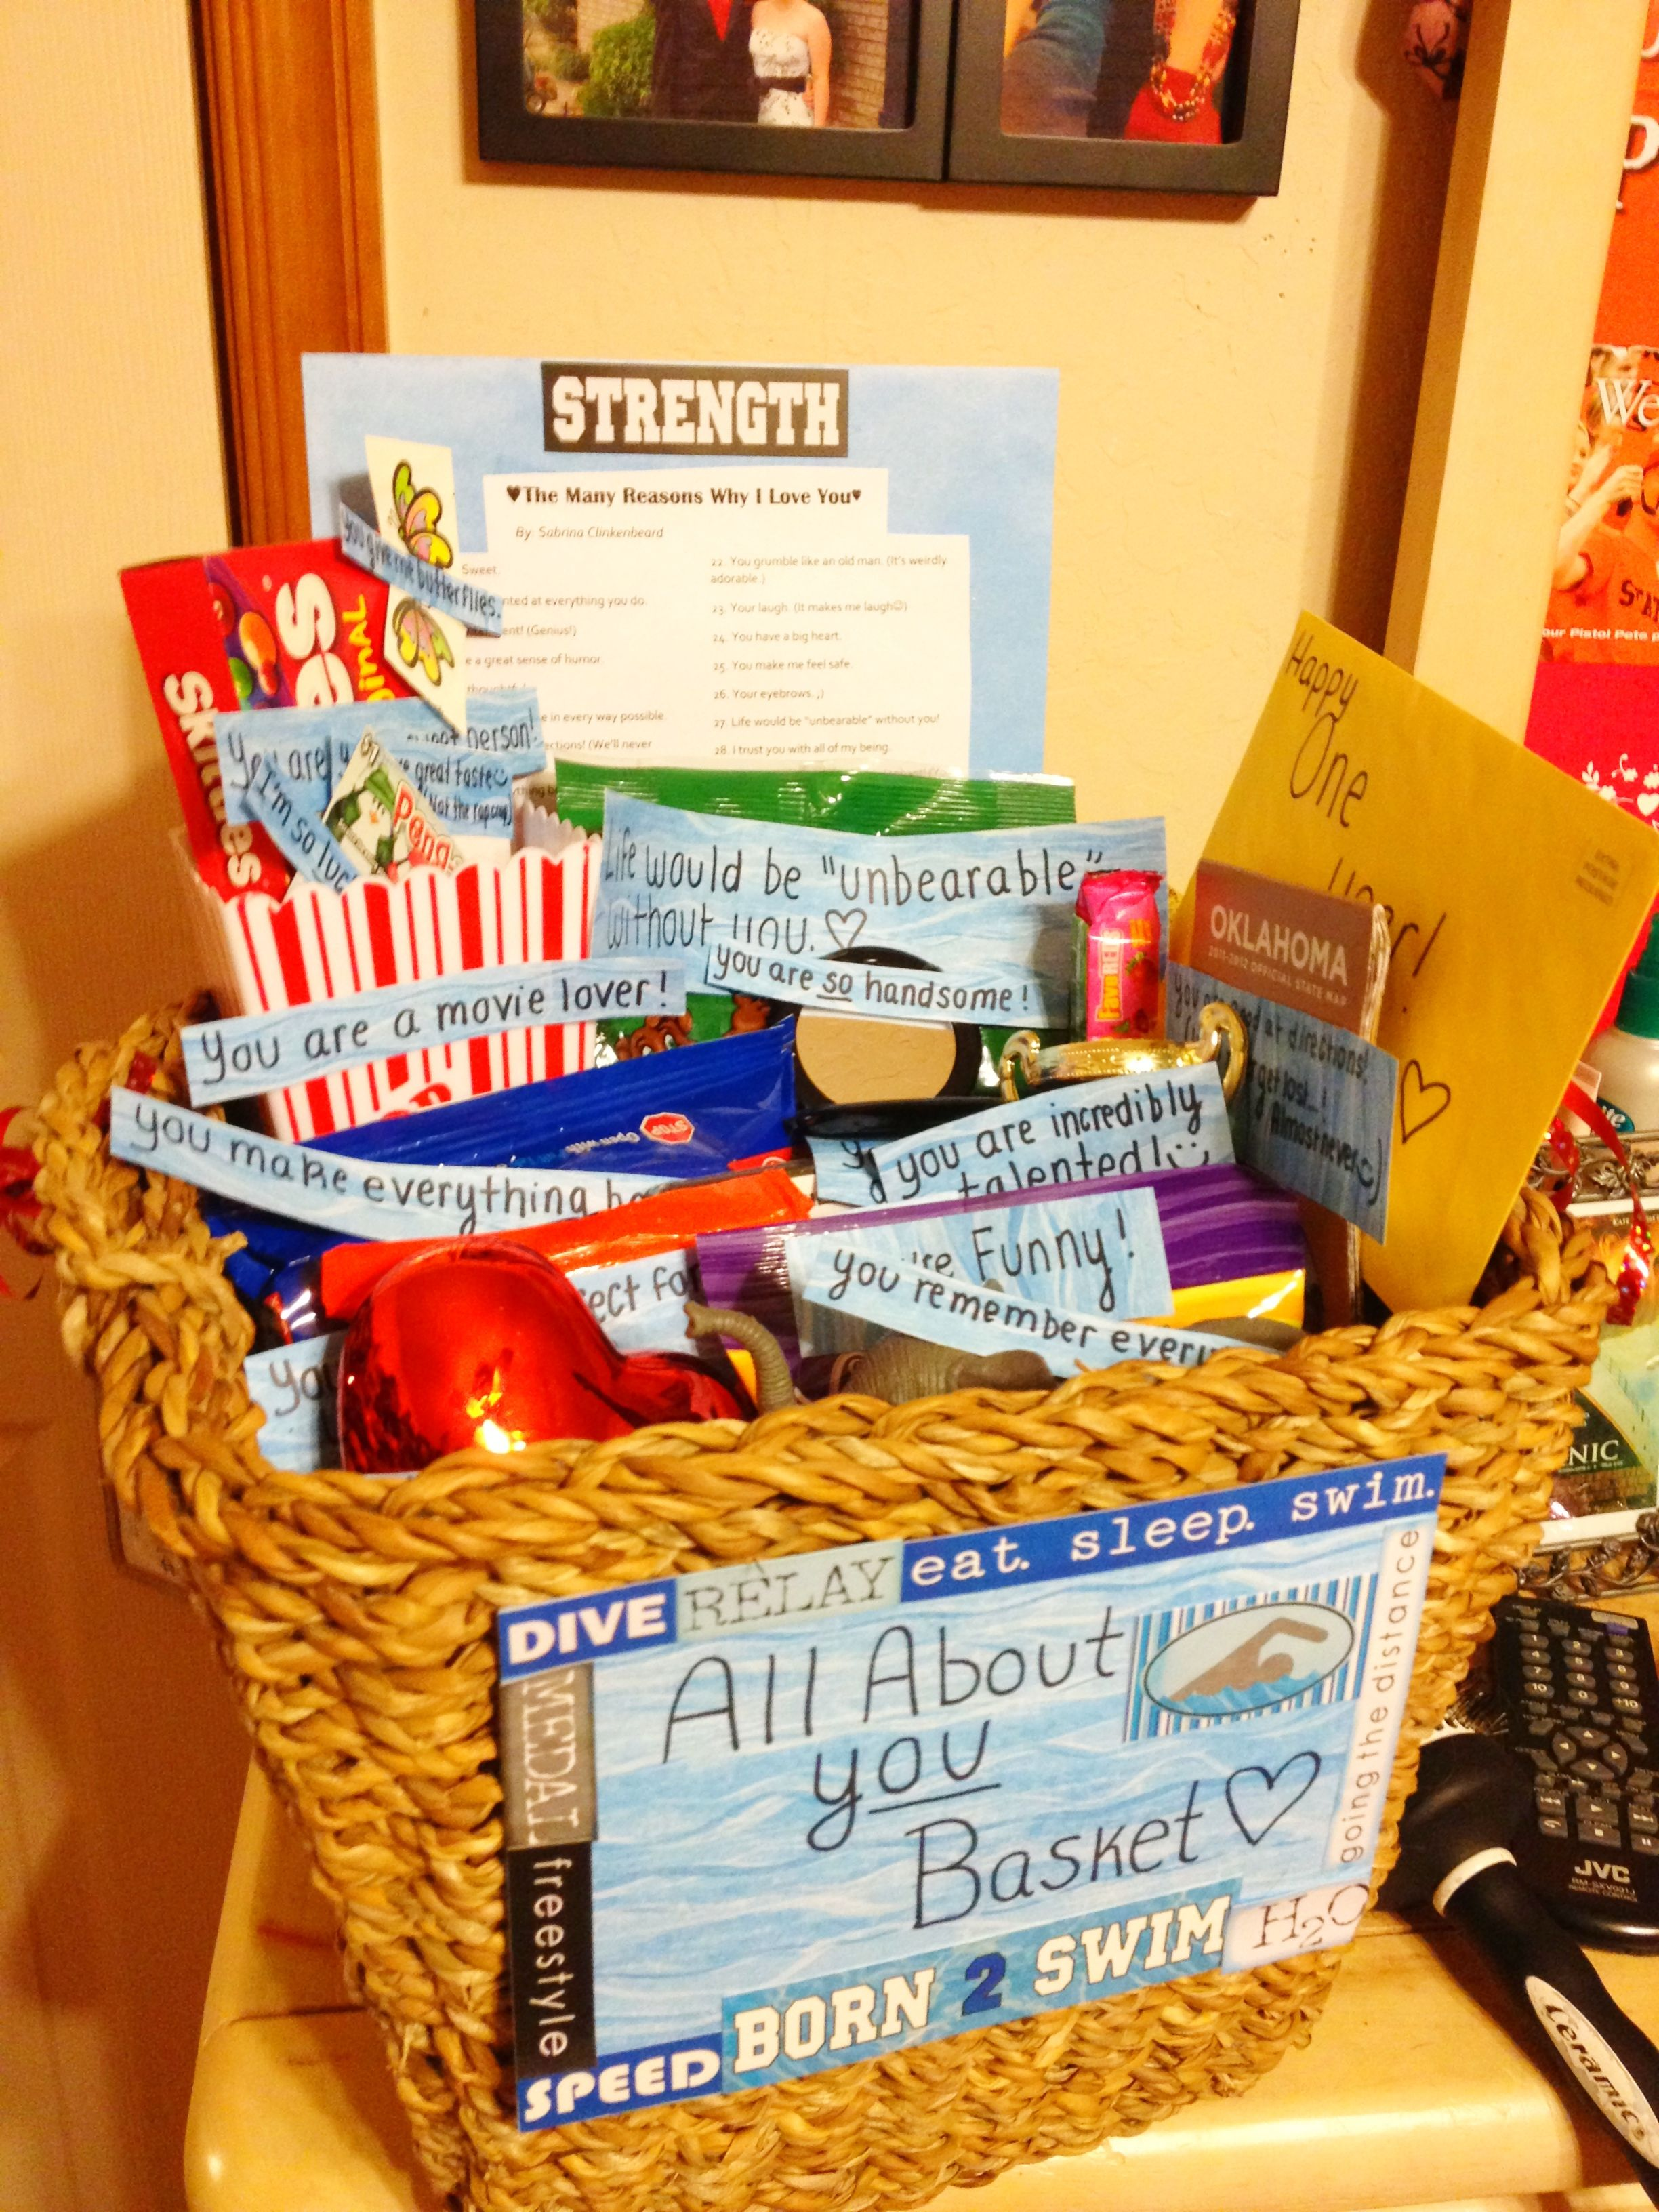 Diy Gift Ideas For Girlfriend All About You Basket For An Anniversary Very Sweet And